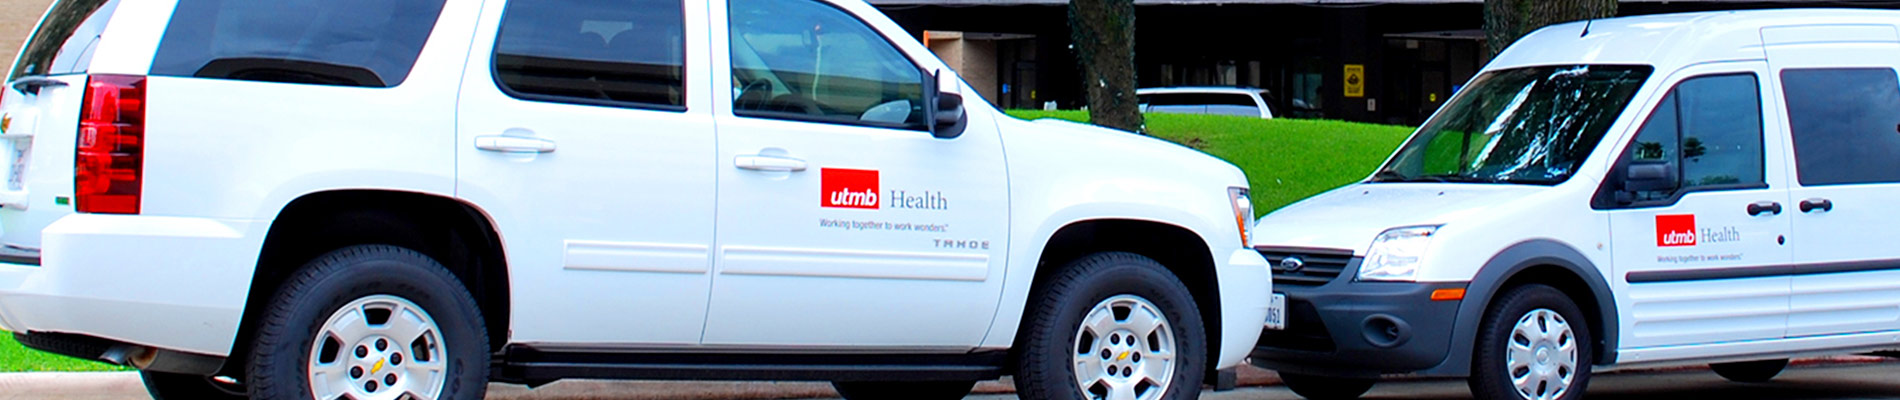 UTMB-vehicles